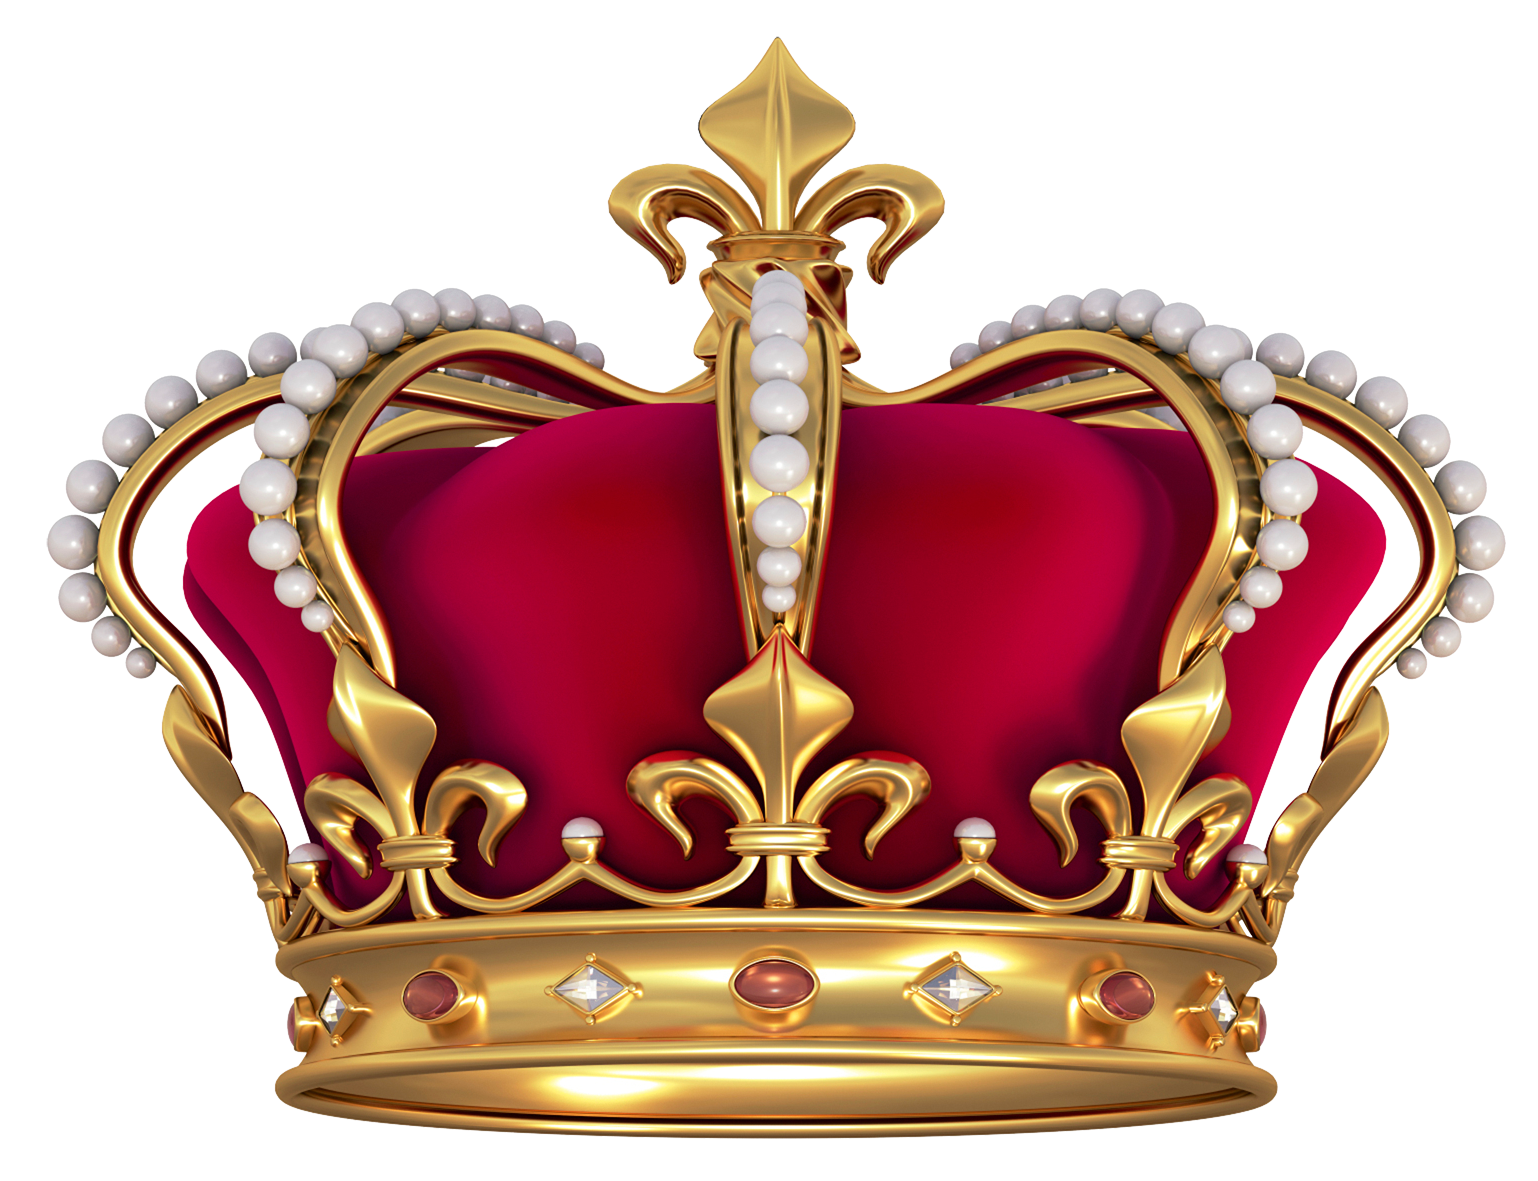 Crown gold diamonds hd clipart image library download Red Gold Crown with Pearls PNG Clipart Picture | Crafting - Regal ... image library download